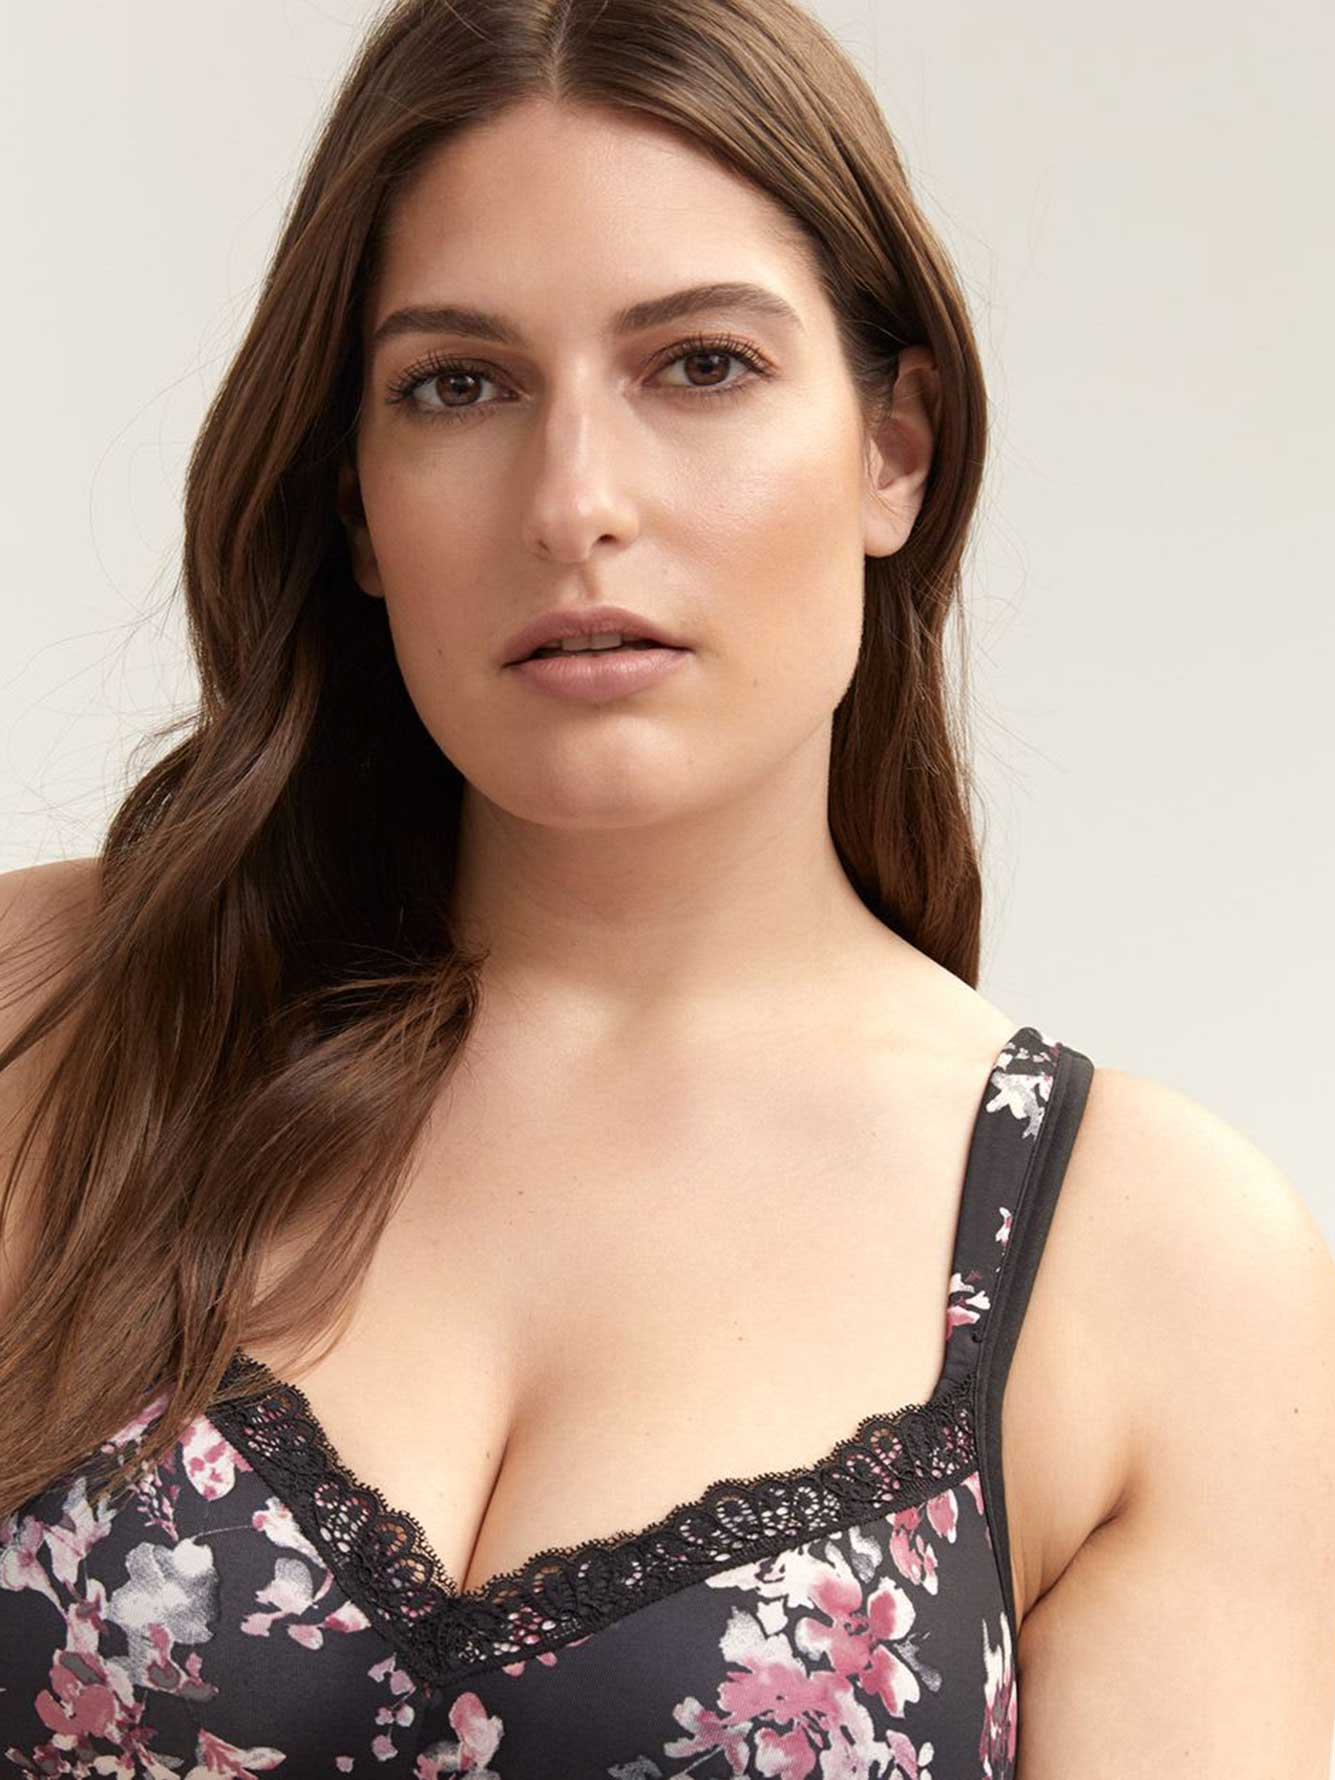 Printed Padded Wirefree Bra with Lace, G & H Cups - ti Voglio